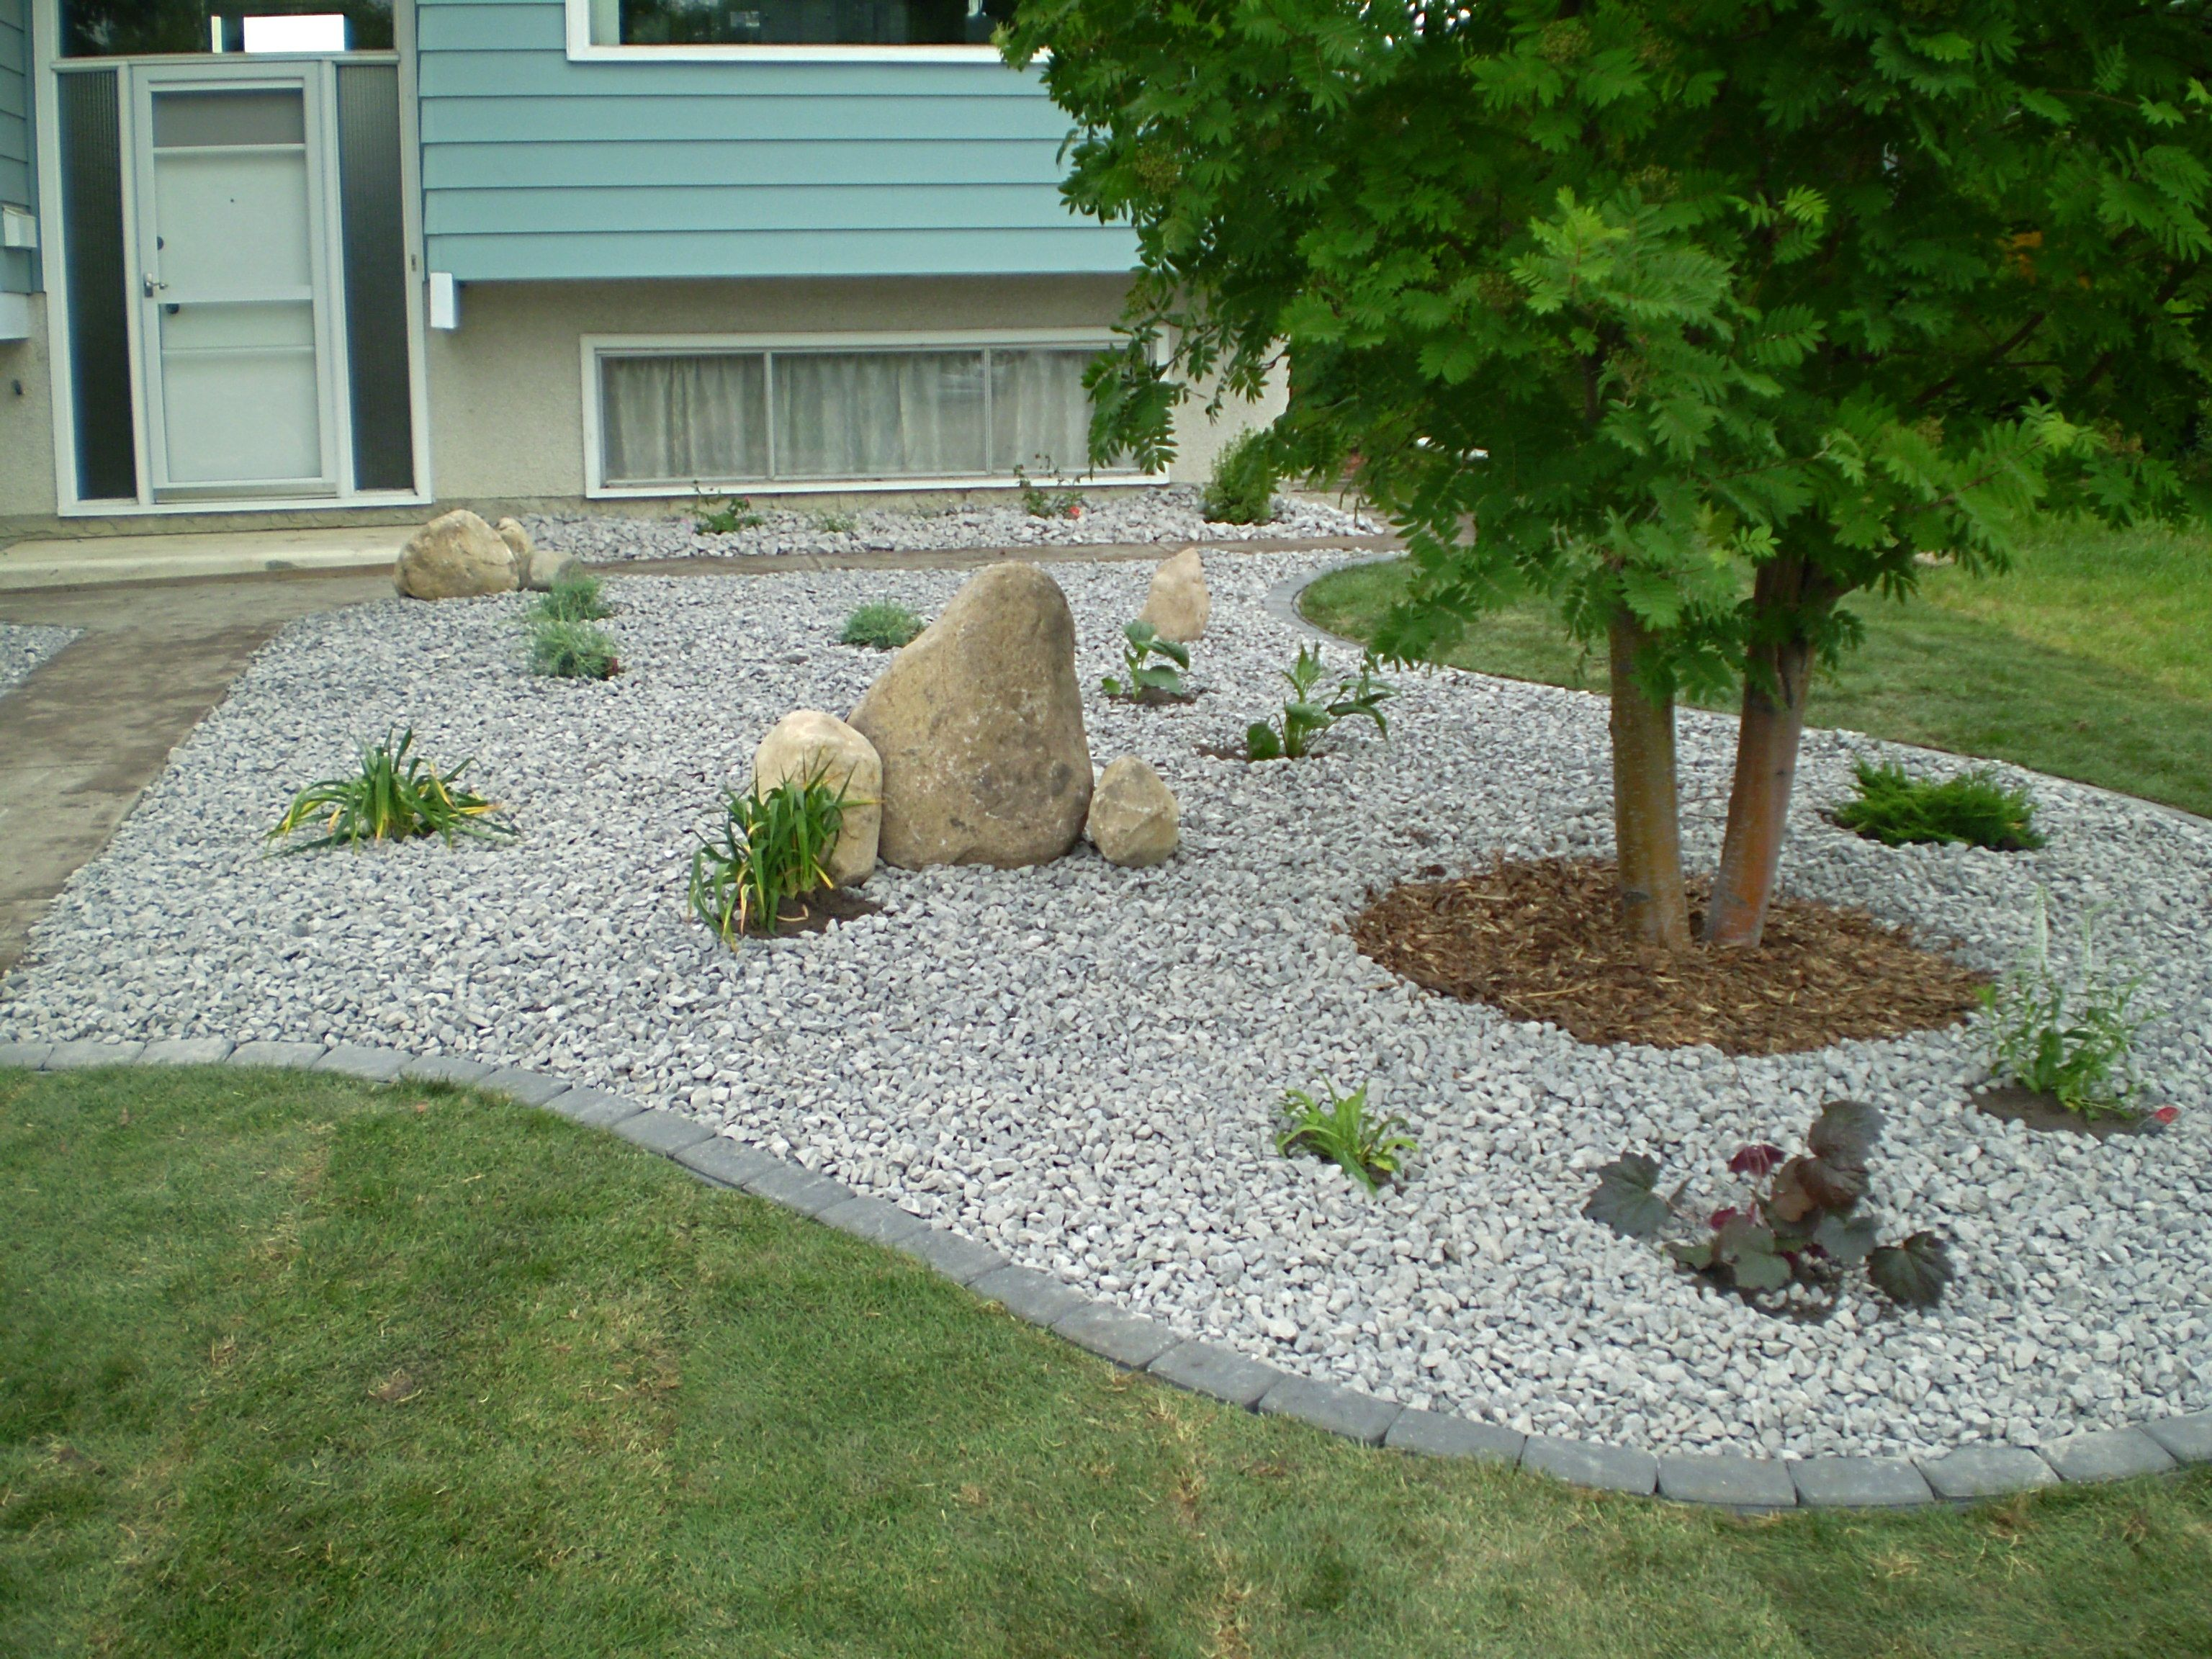 Landscaping With Rocks And Pebbles : Landscaping with rocks and stones whitemud garden centre